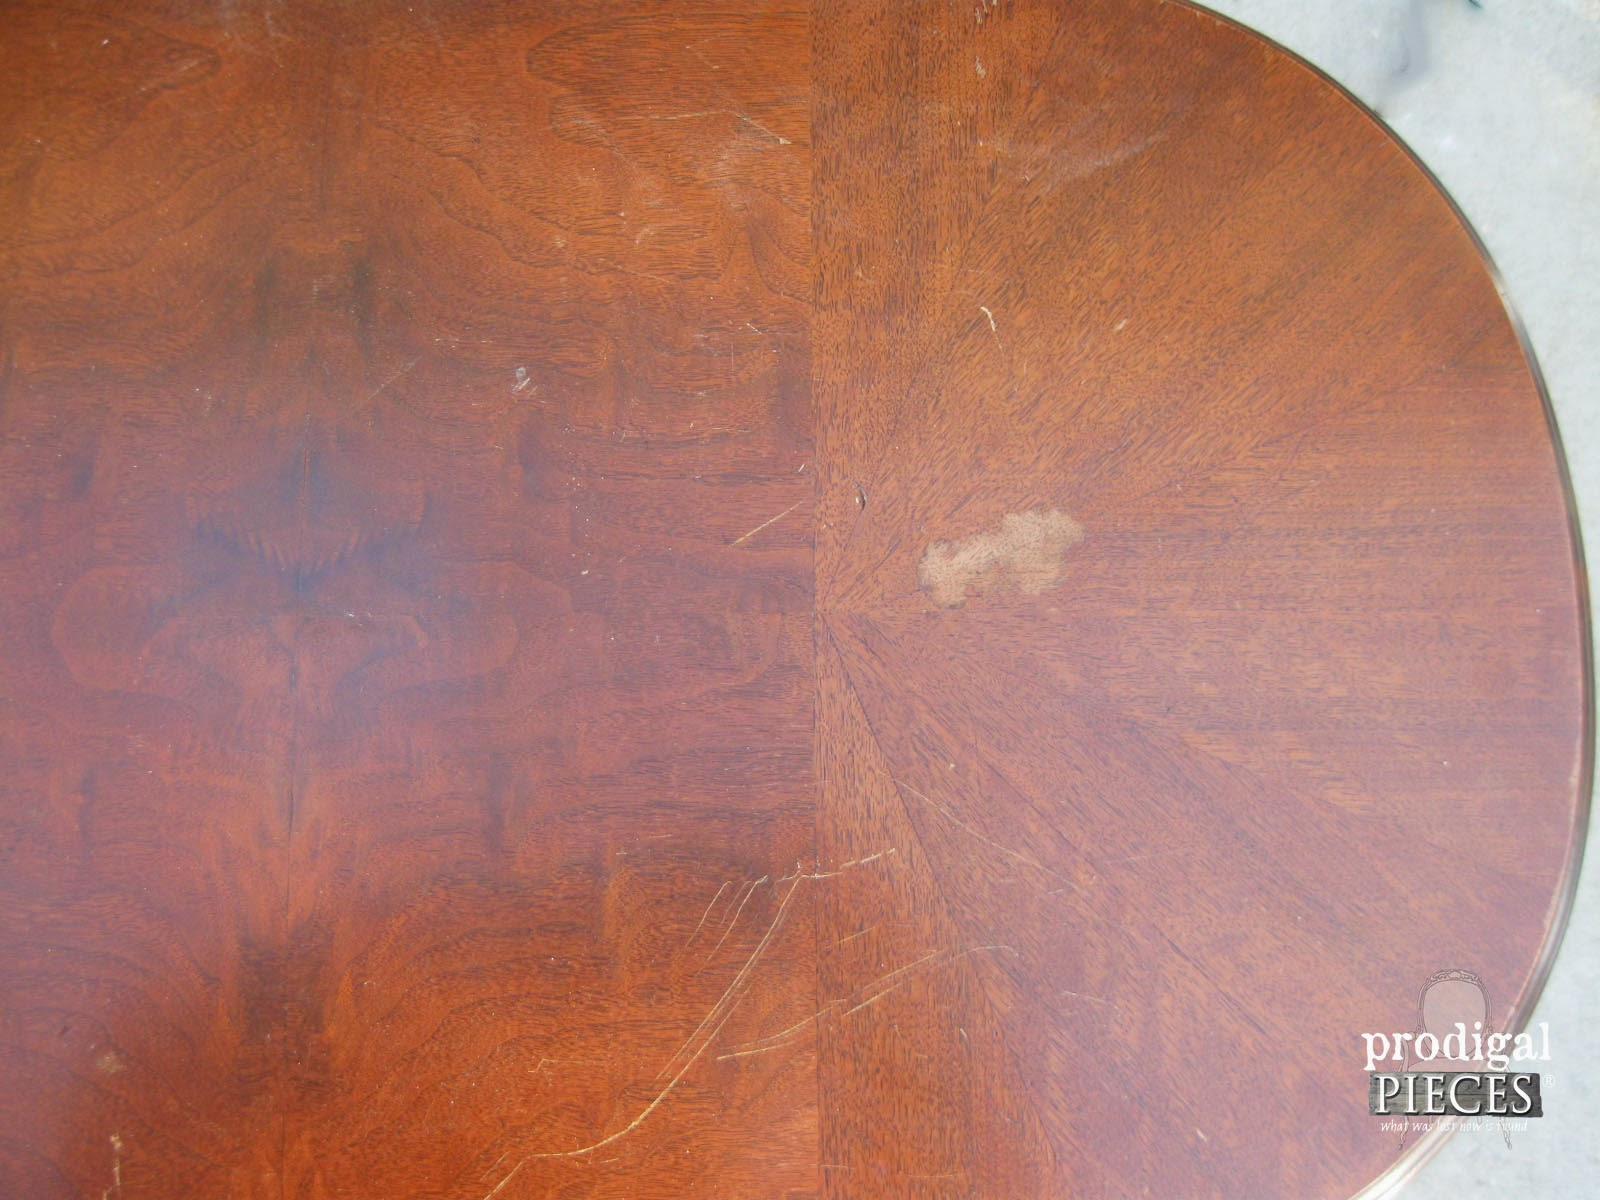 Damaged Table Top | Prodigal Pieces